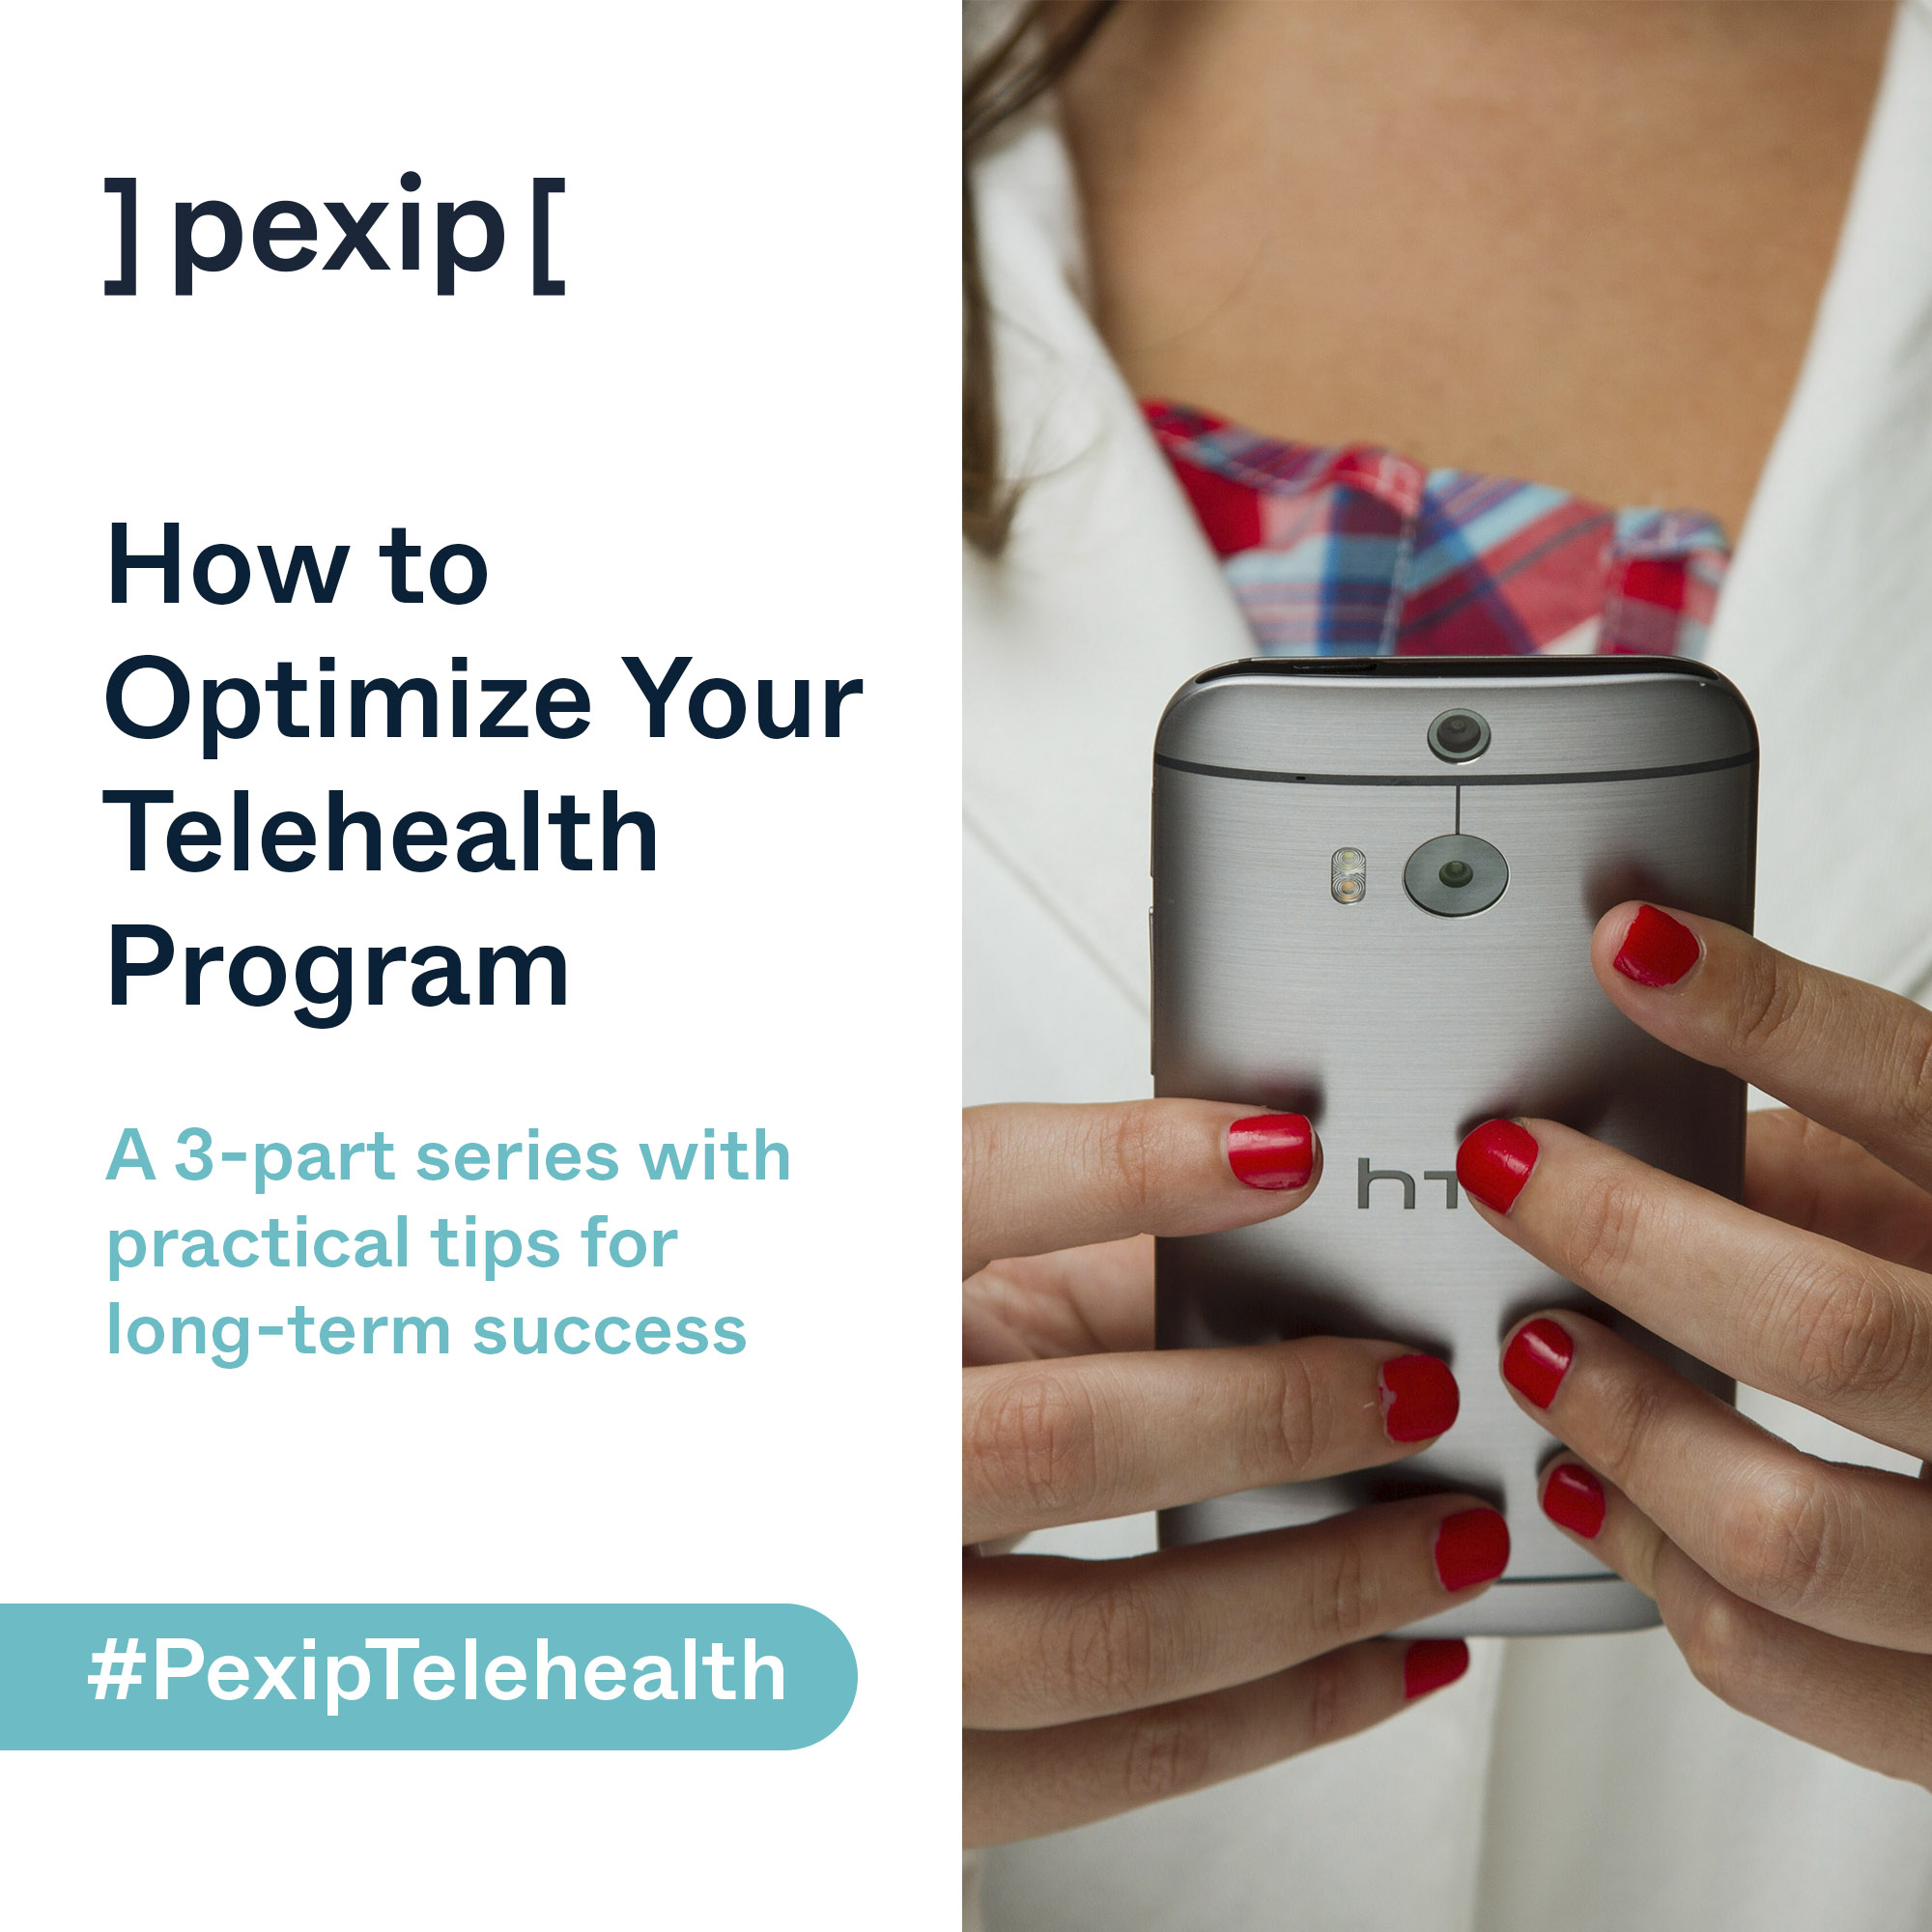 How to Optimize Your Telehealth Program: a 3-part series with practical tips for long-term success